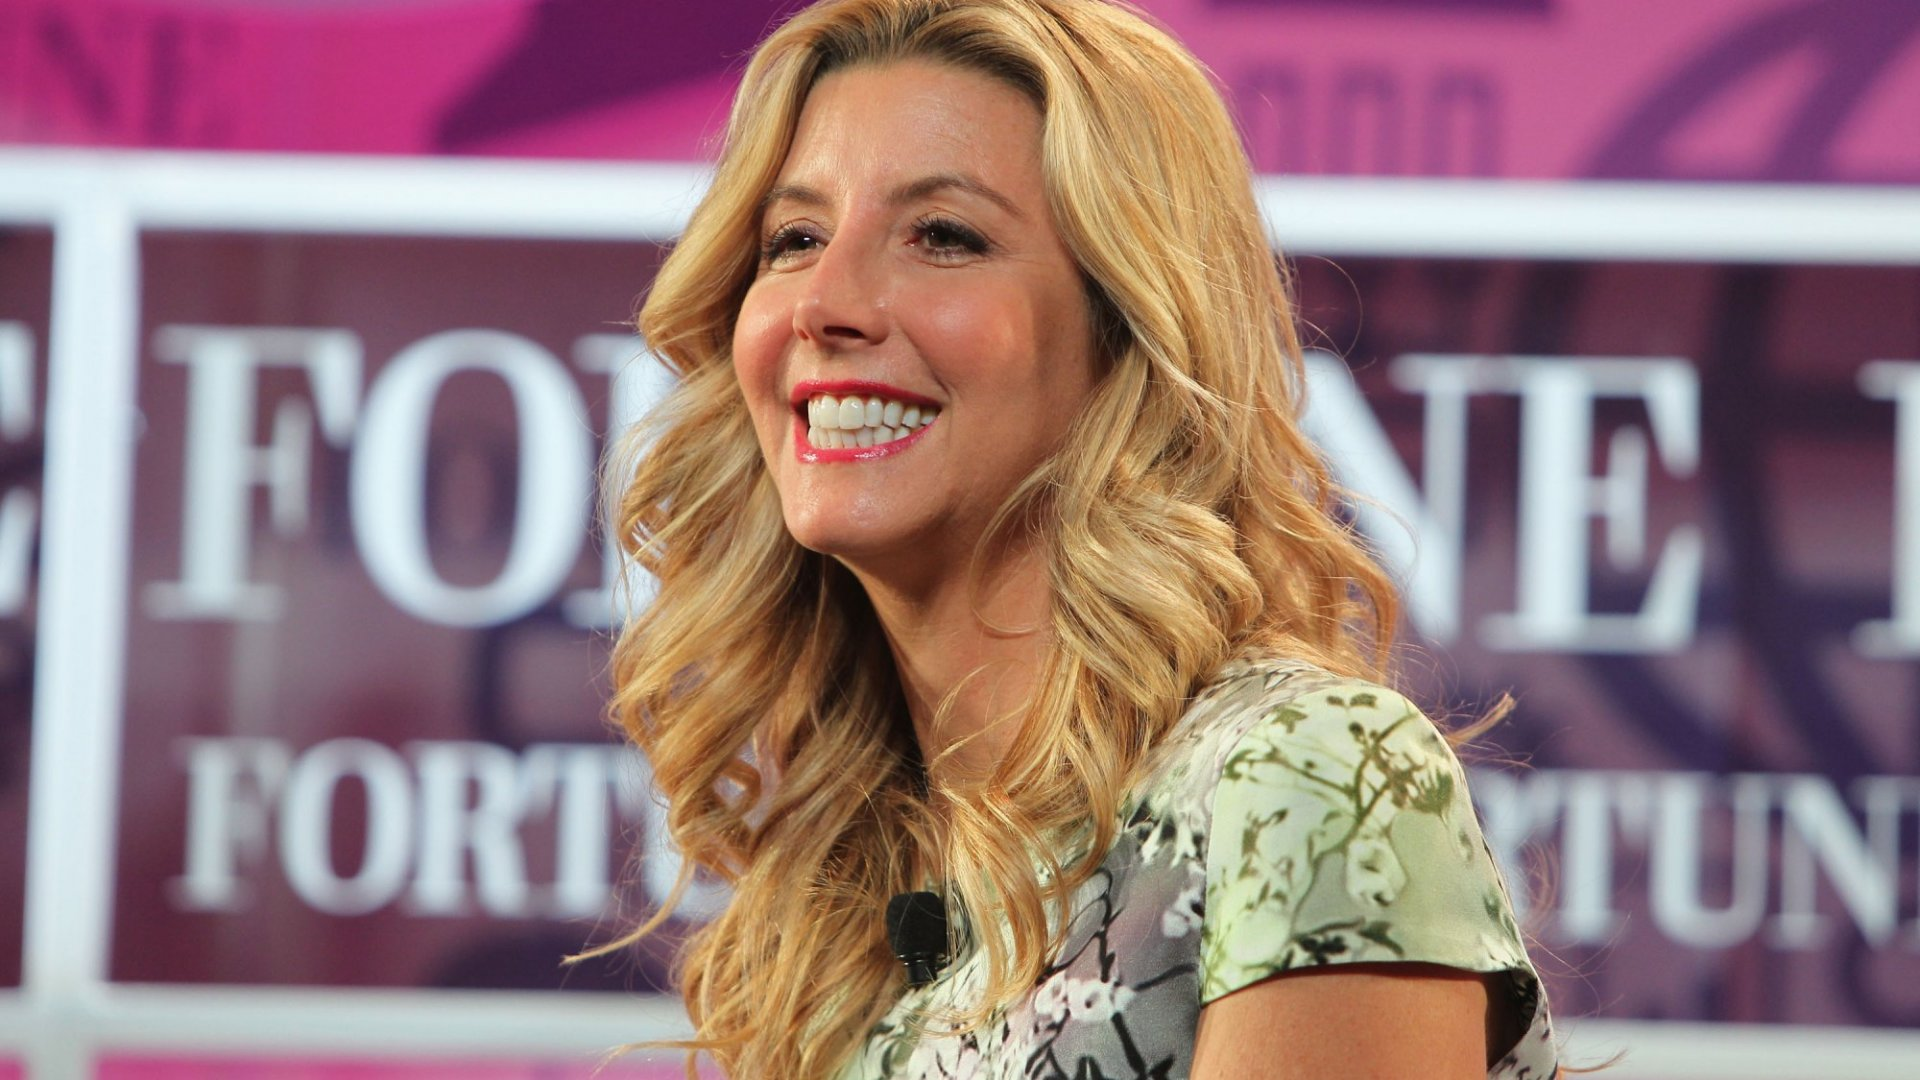 Spanx's Billionaire CEO Has a Strikingly Simple Morning Routine to Turbocharge Her Workday